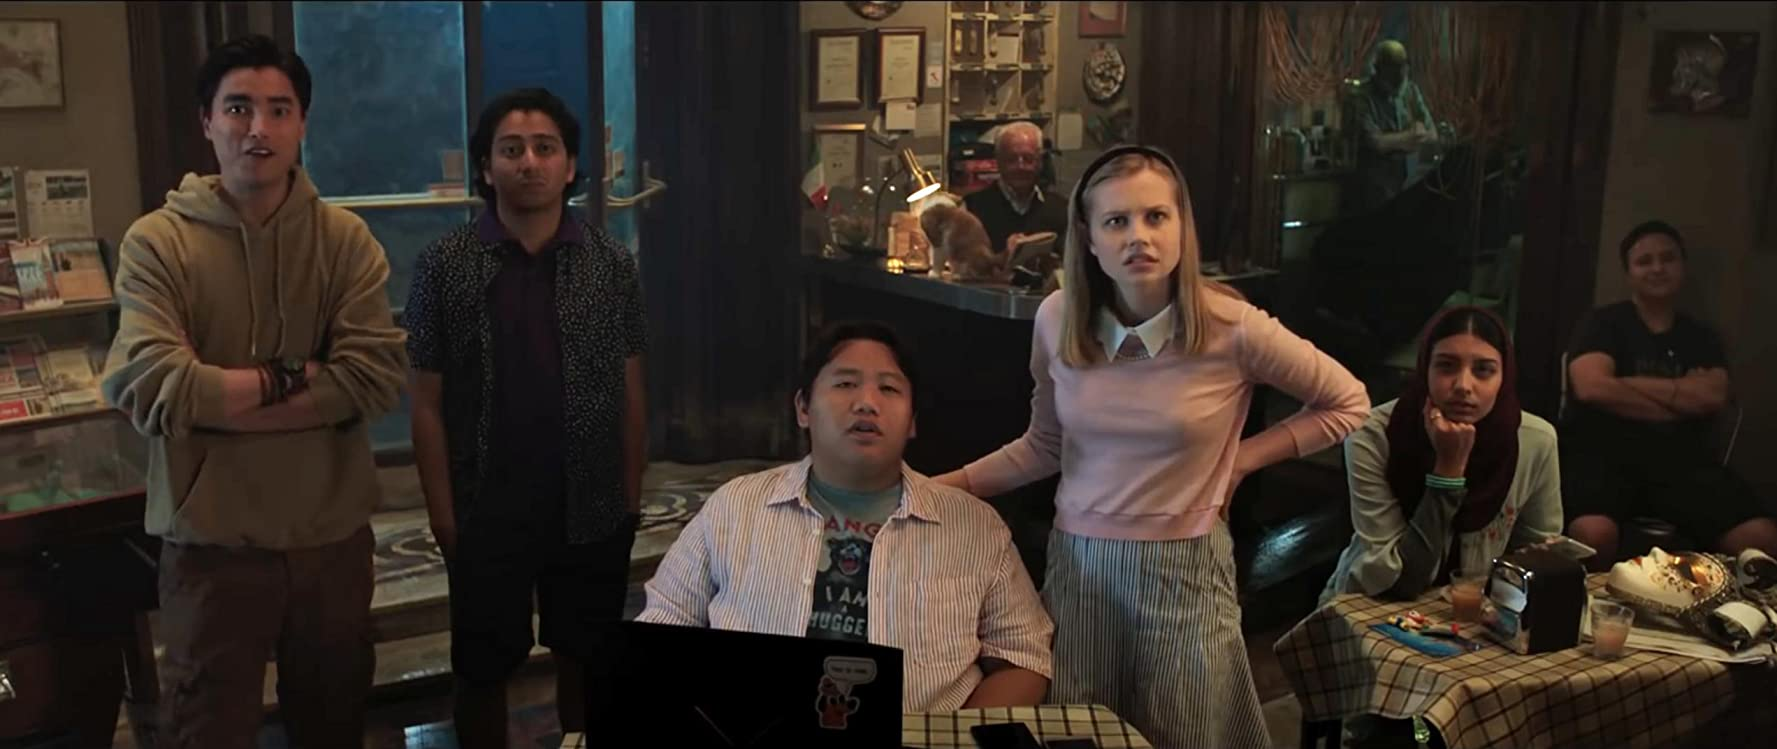 Zach Barack, Tony Revolori, Remy Hii, Angourie Rice, and Jacob Batalon in Spider-Man: Far from Home (2019)